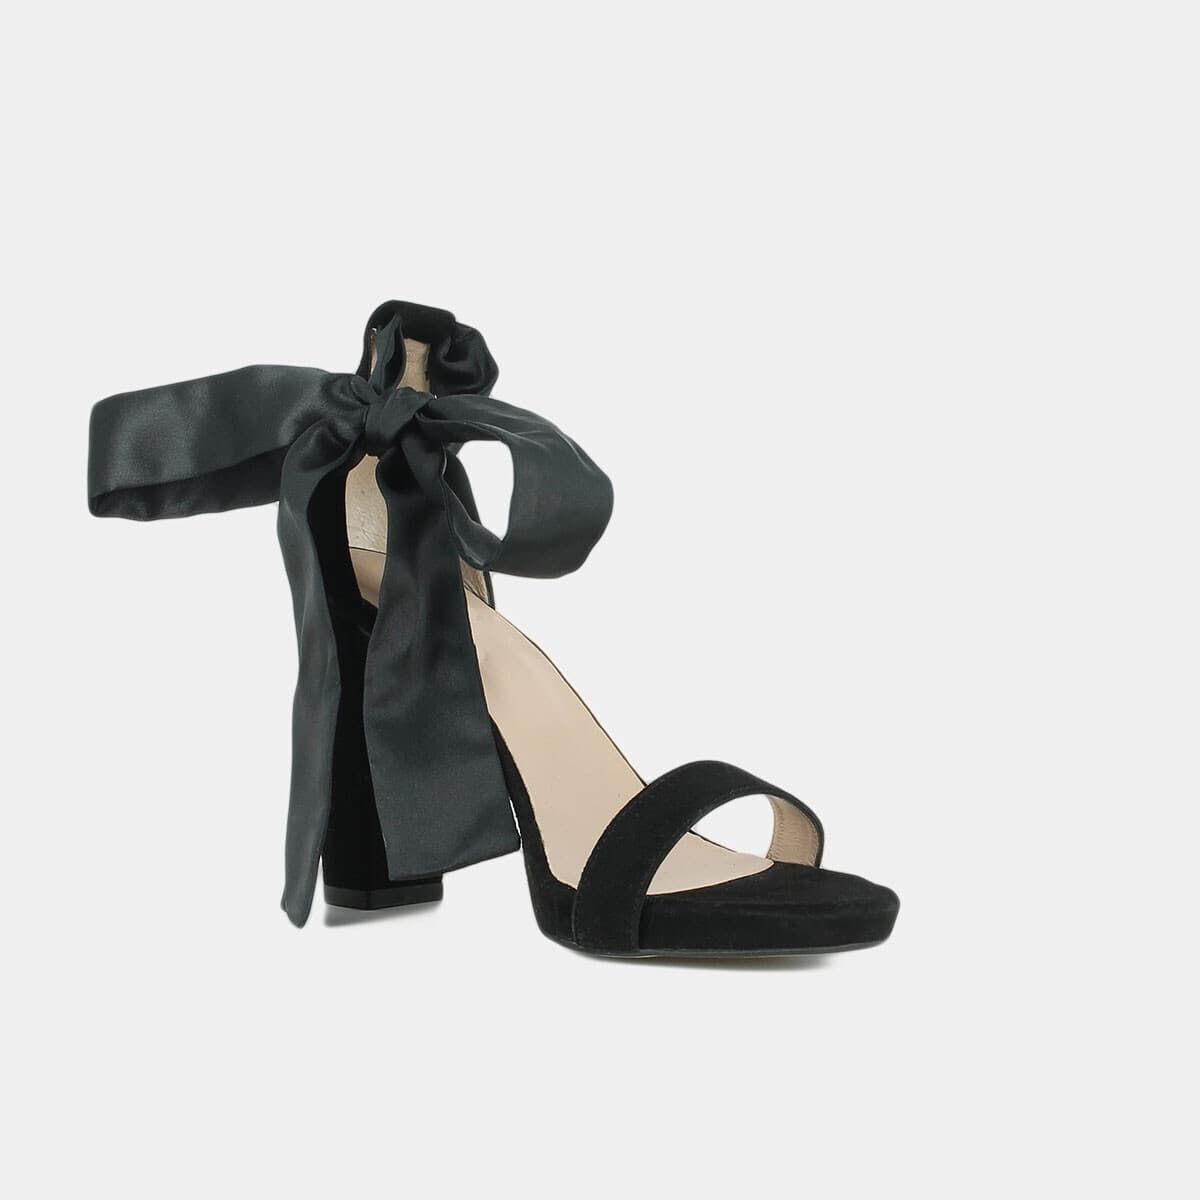 Femme Sandales Chaussures Outlet Jonak Chaussures Outlet qFvaI